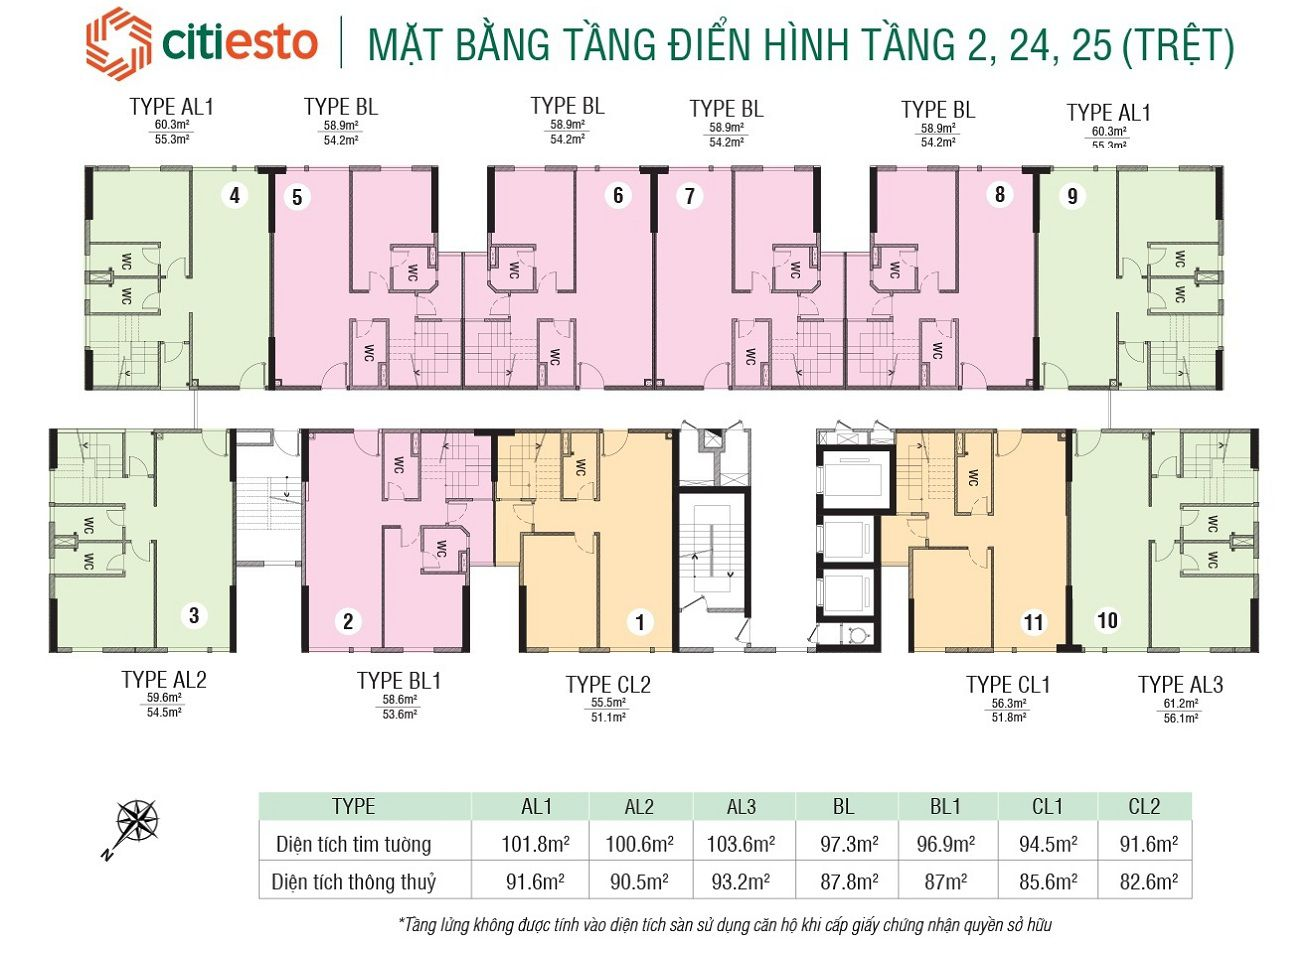 VINestate (Vietnam) - Citi Esto apartments Floor Plan